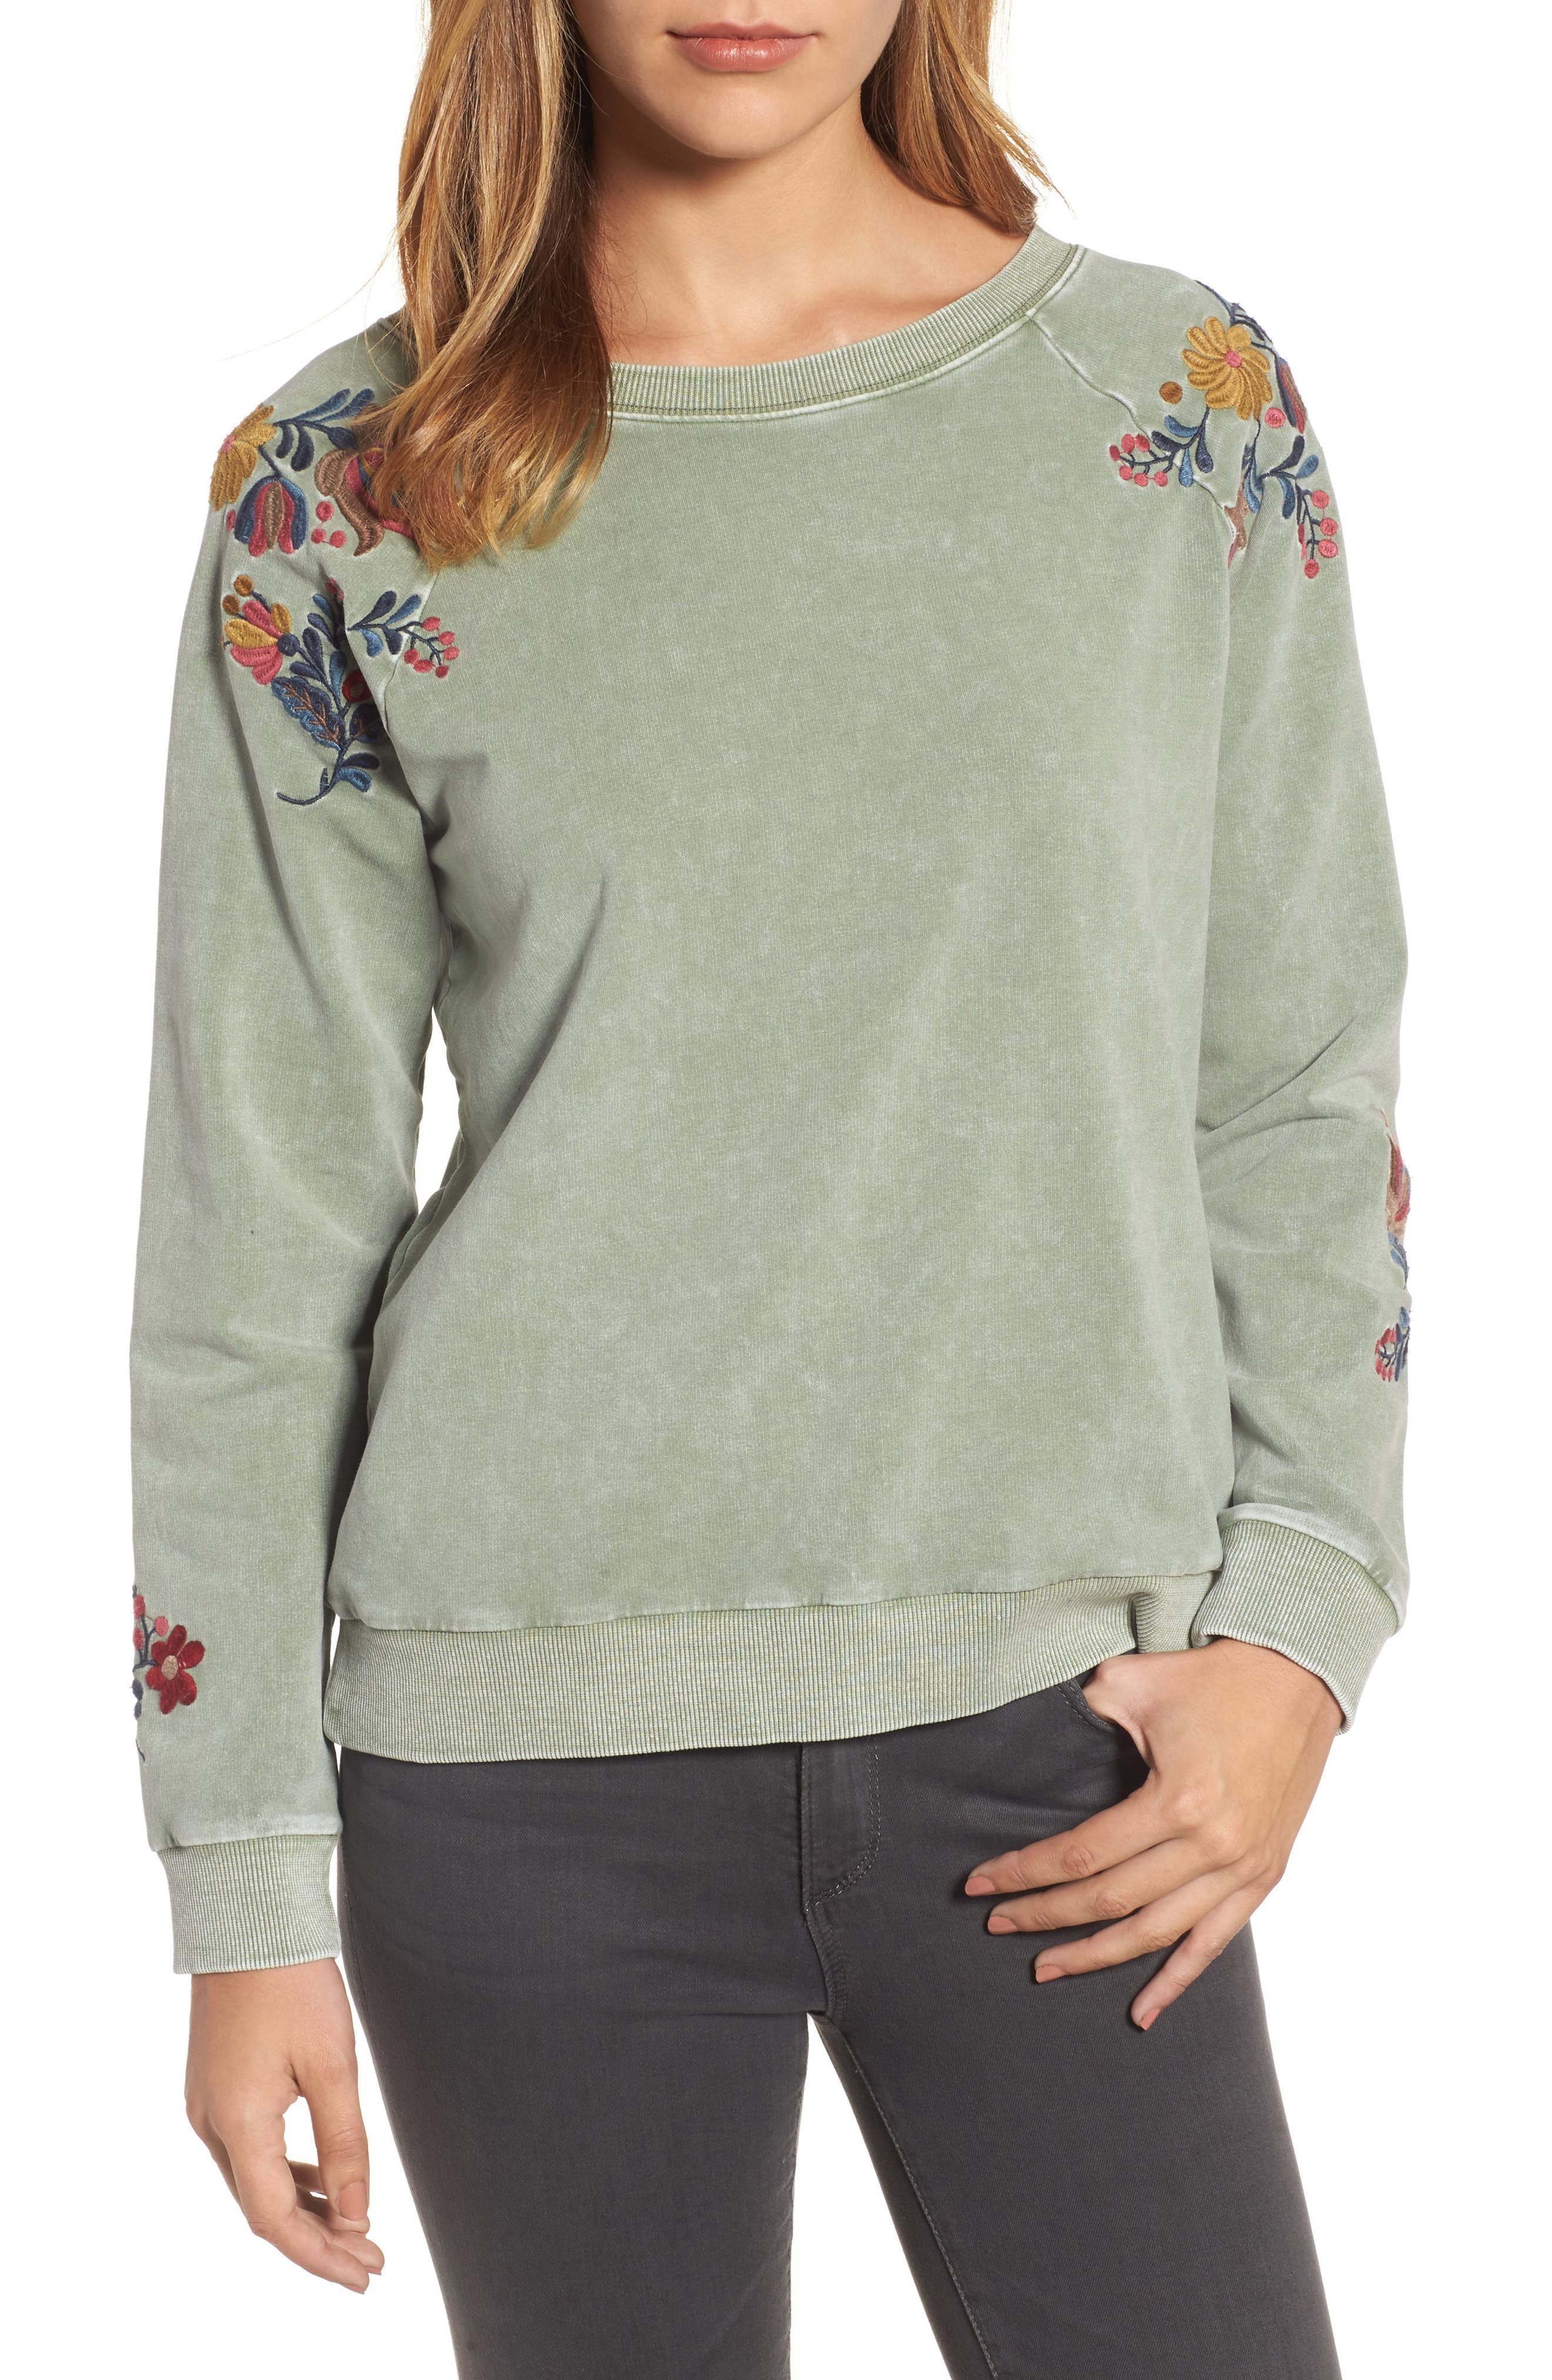 Main Image - Billy T Embroidered Lace-Up Back Sweatshirt